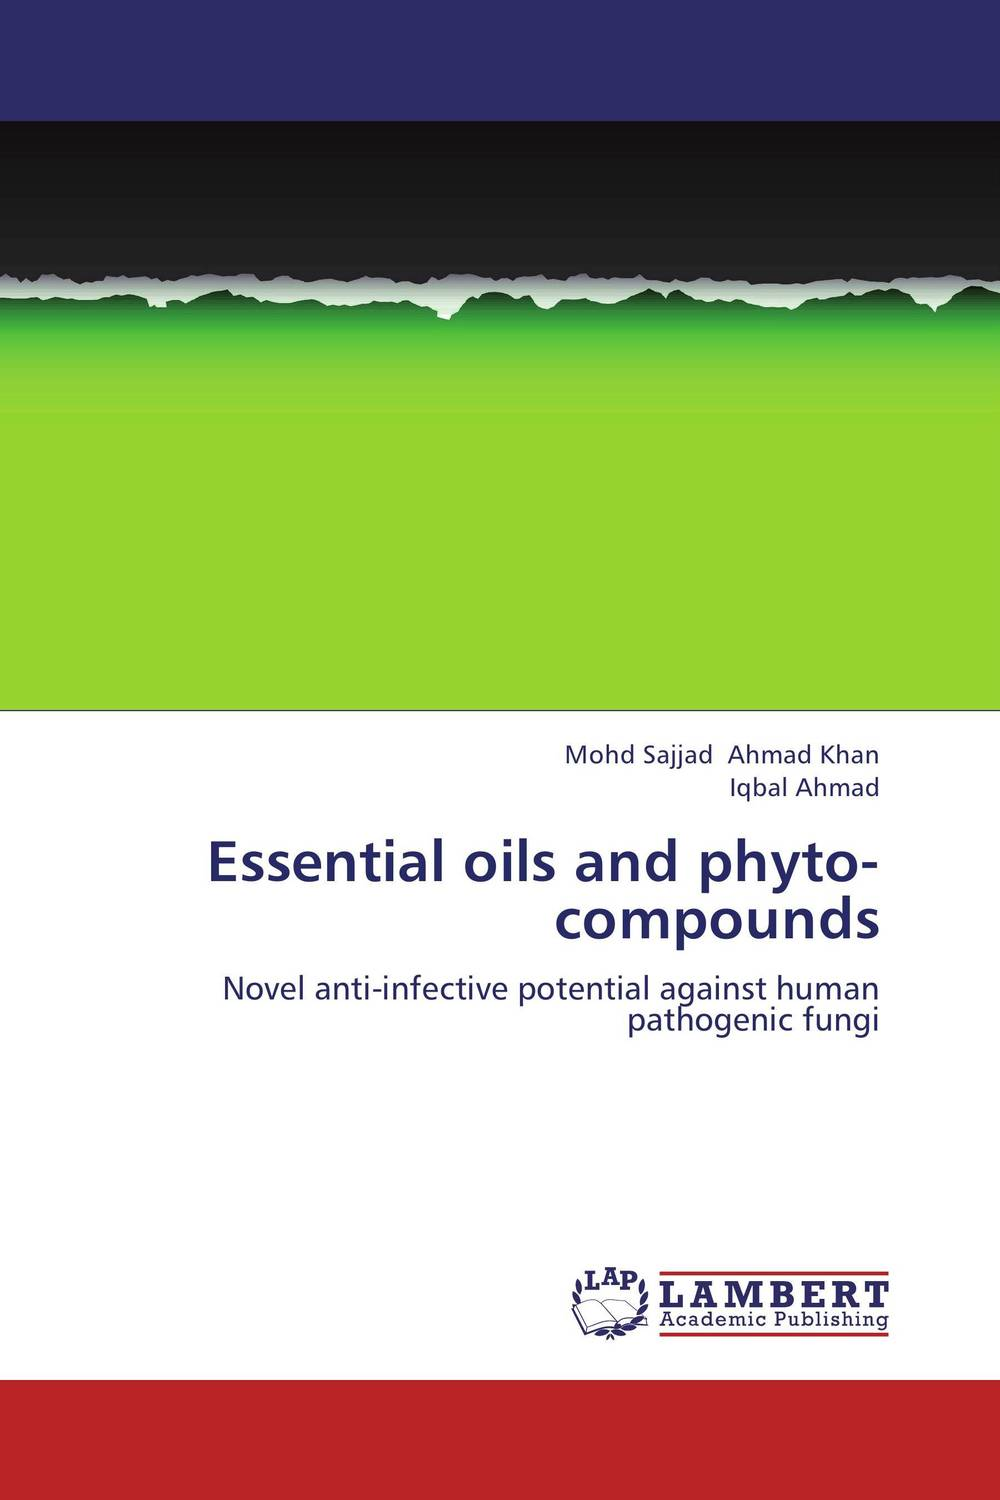 Essential oils and phyto-compounds dr david m mburu prof mary w ndungu and prof ahmed hassanali virulence and repellency of fungi on macrotermes and mediating signals